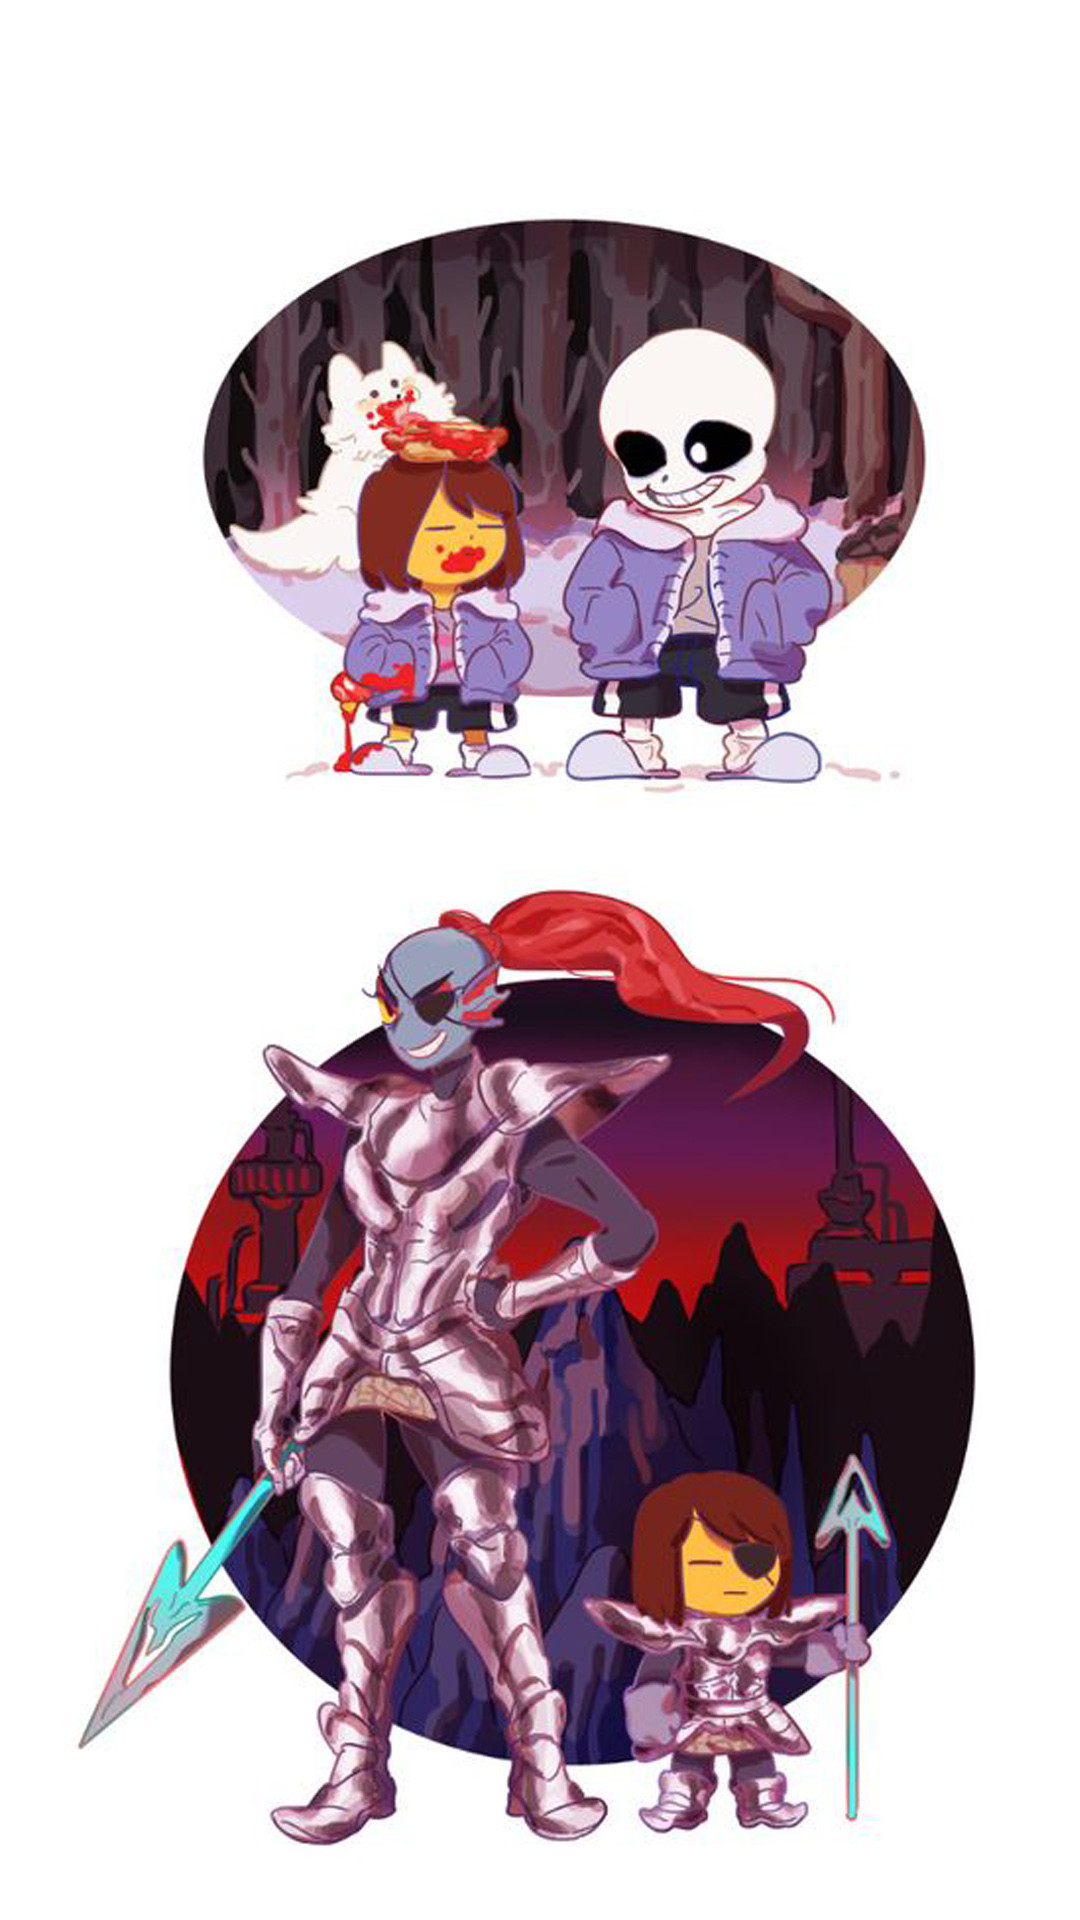 1080x1920 Undertale iphone hd wallpaper